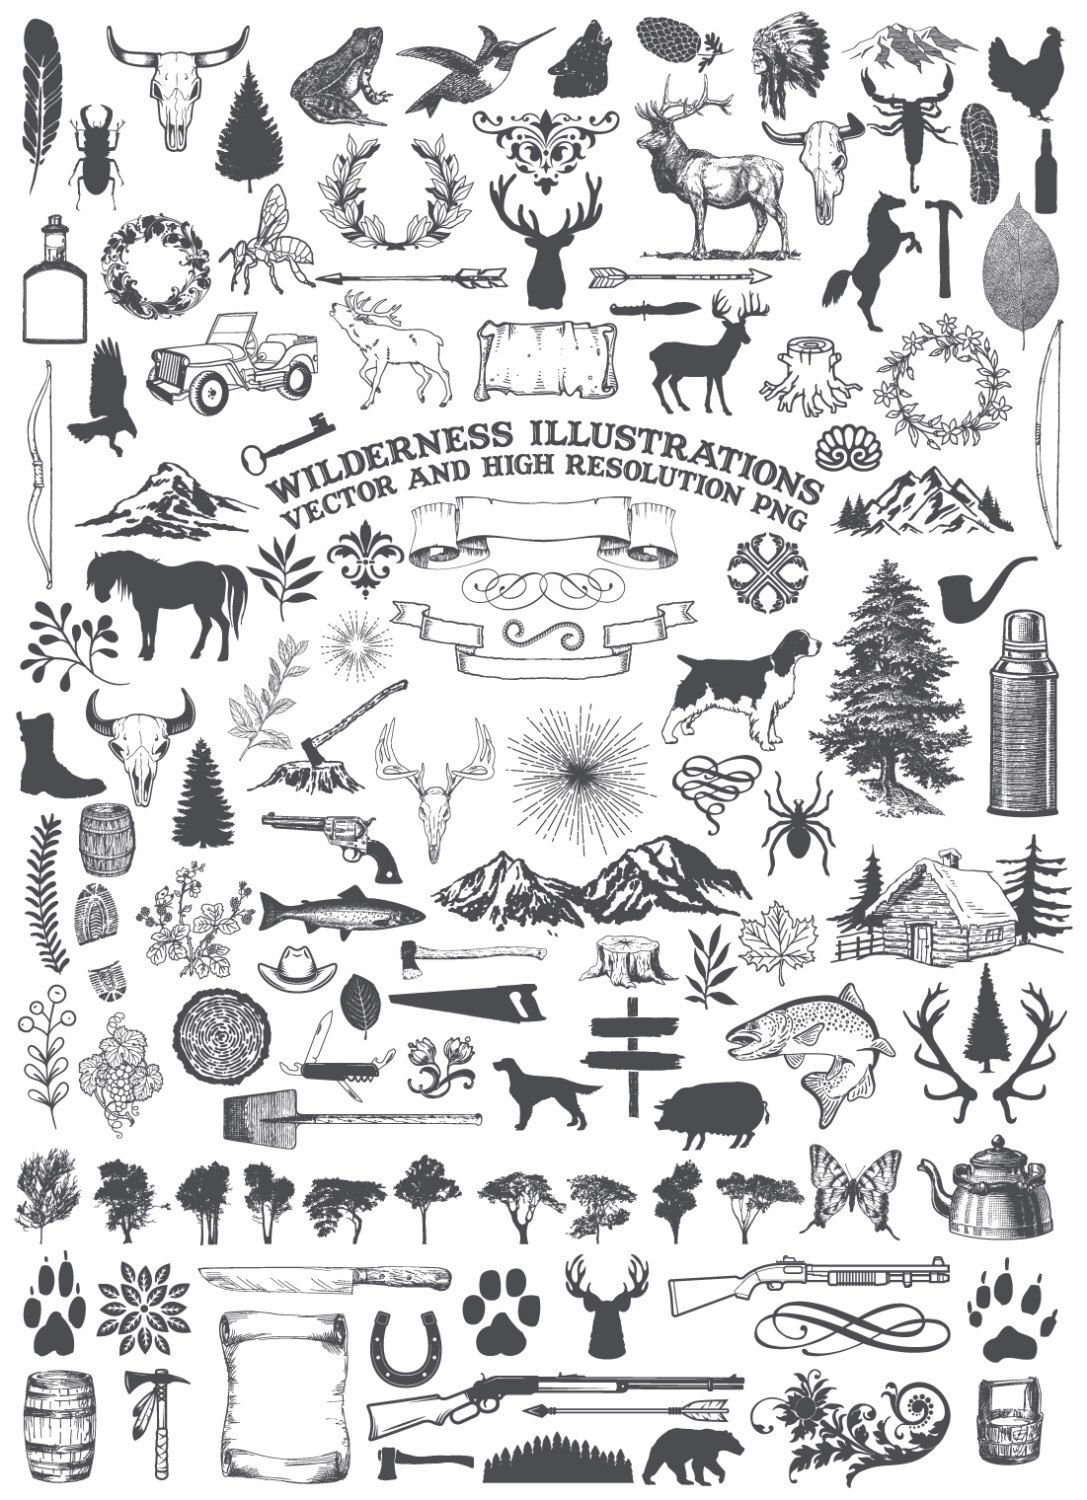 Hunting clipart vector element. Camping animal nature rustic